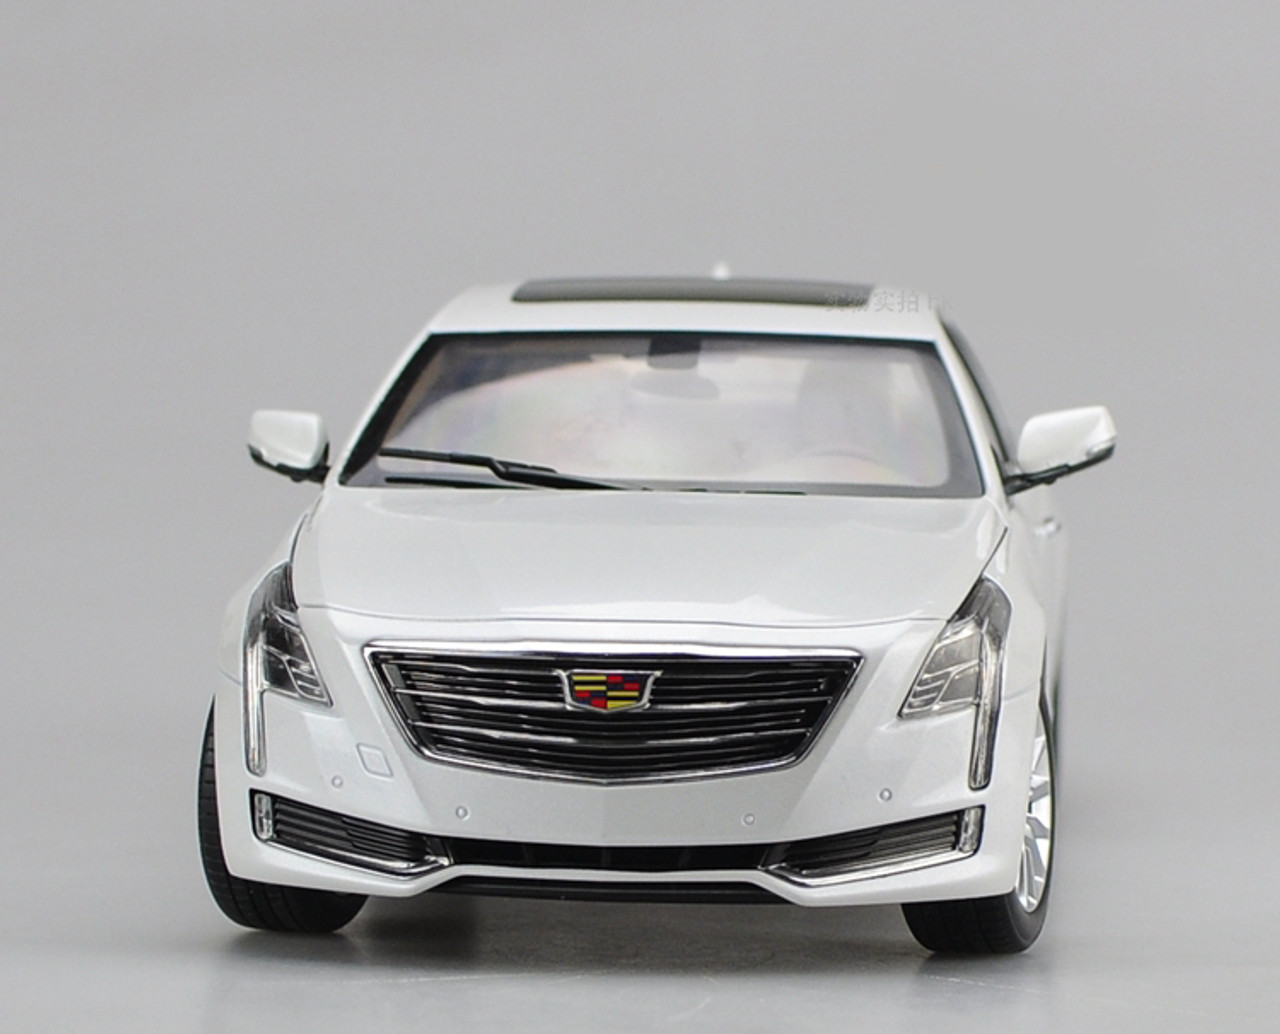 1/18 Dealer Edition Cadillac CT6 (White) Diecast Car Model